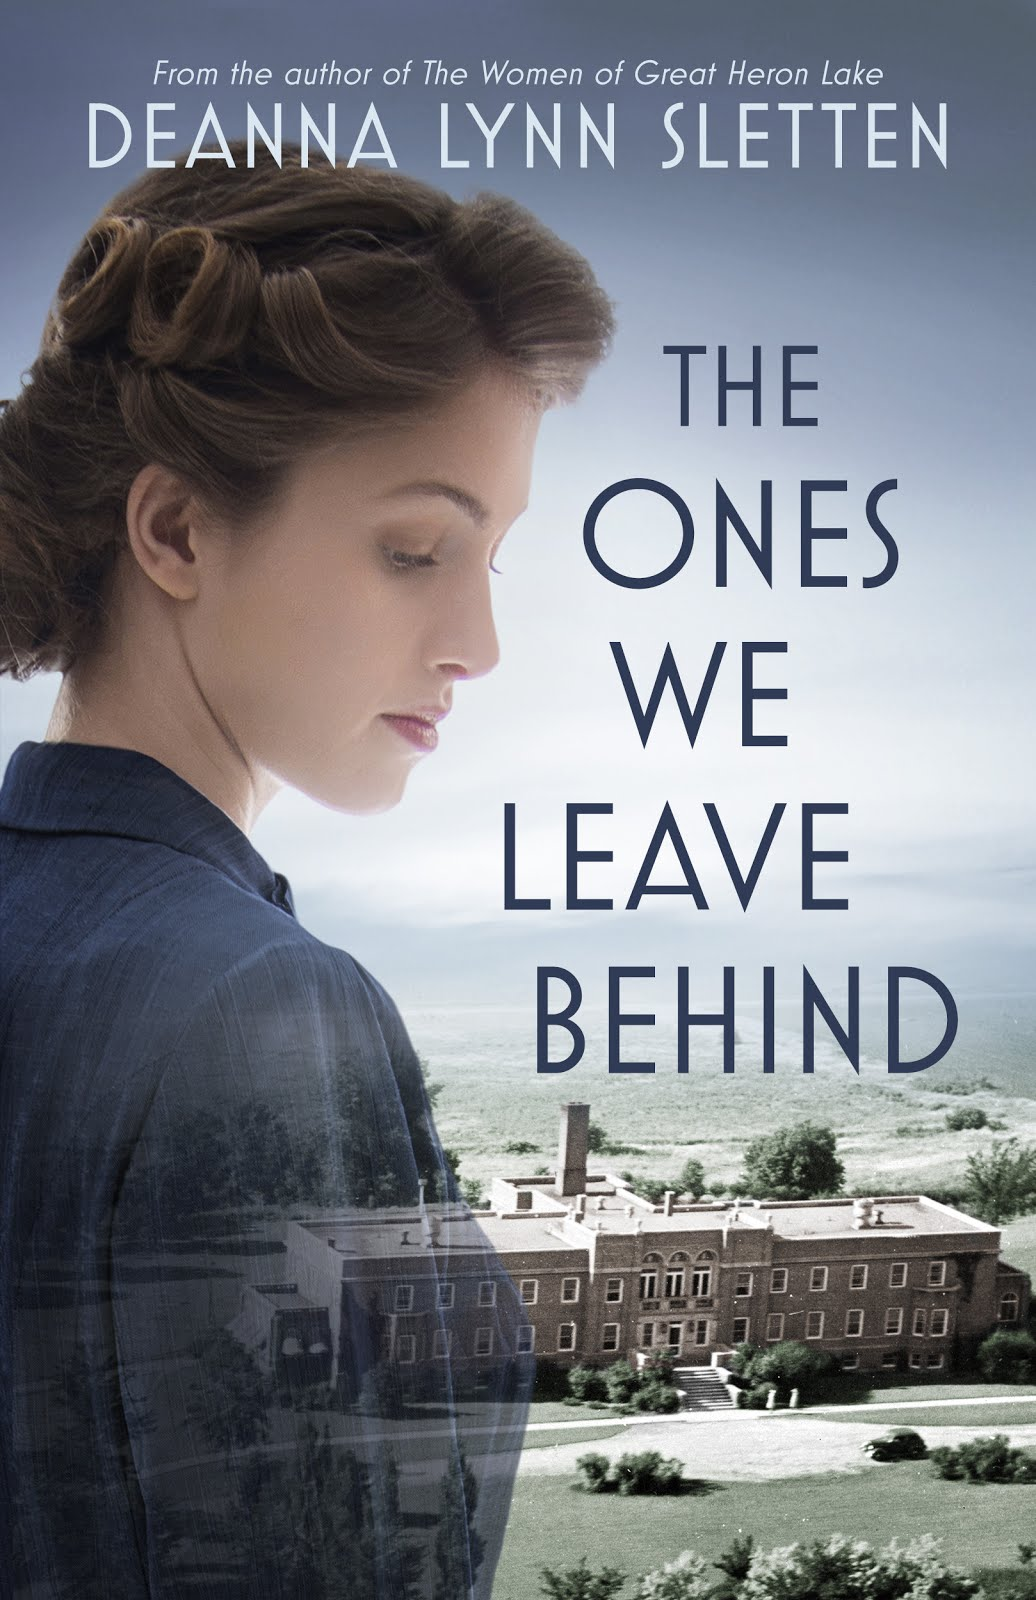 New Release! The Ones We Leave Behind